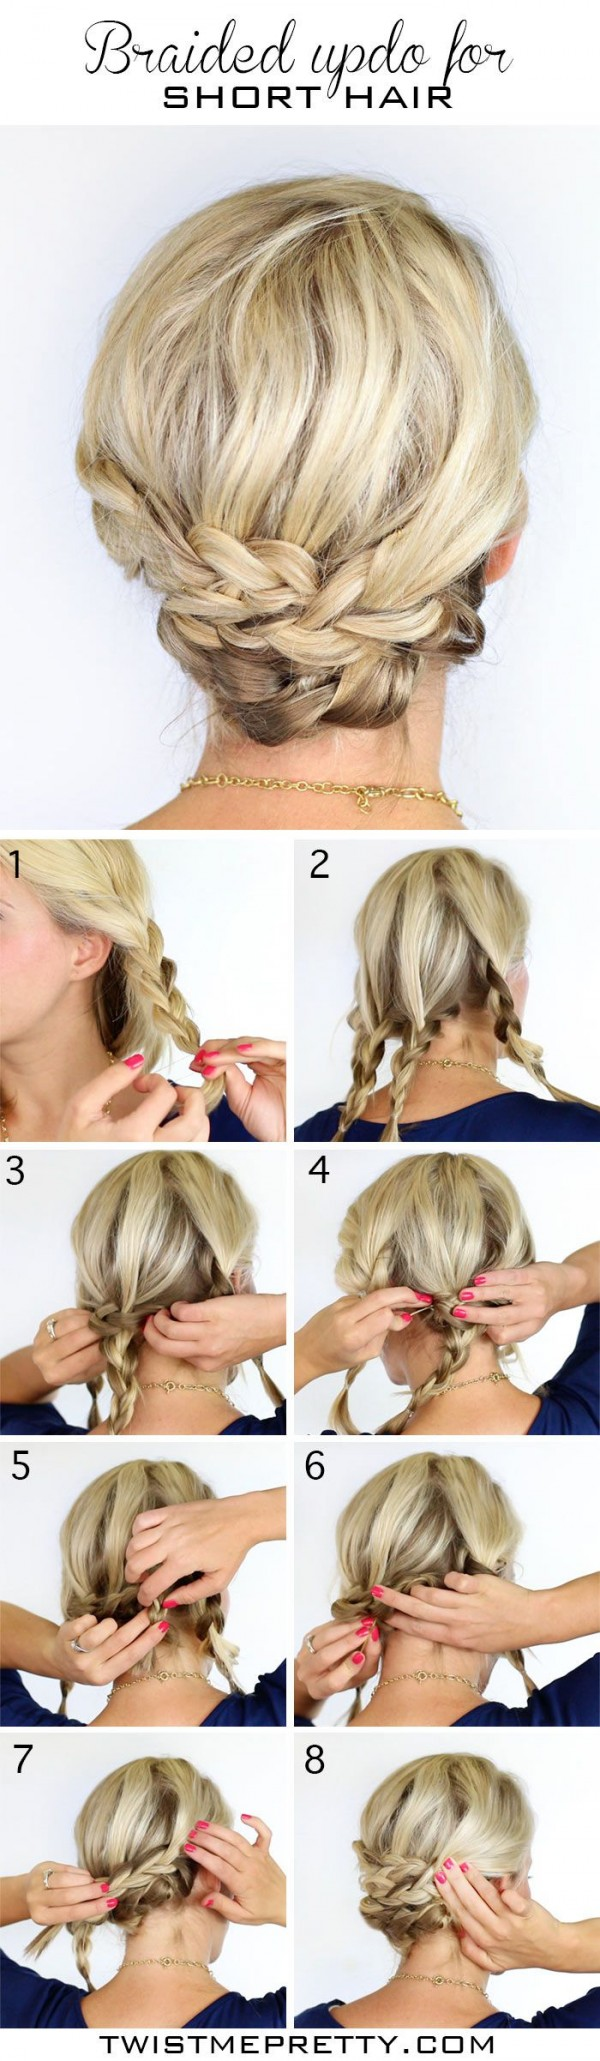 braid short hair3